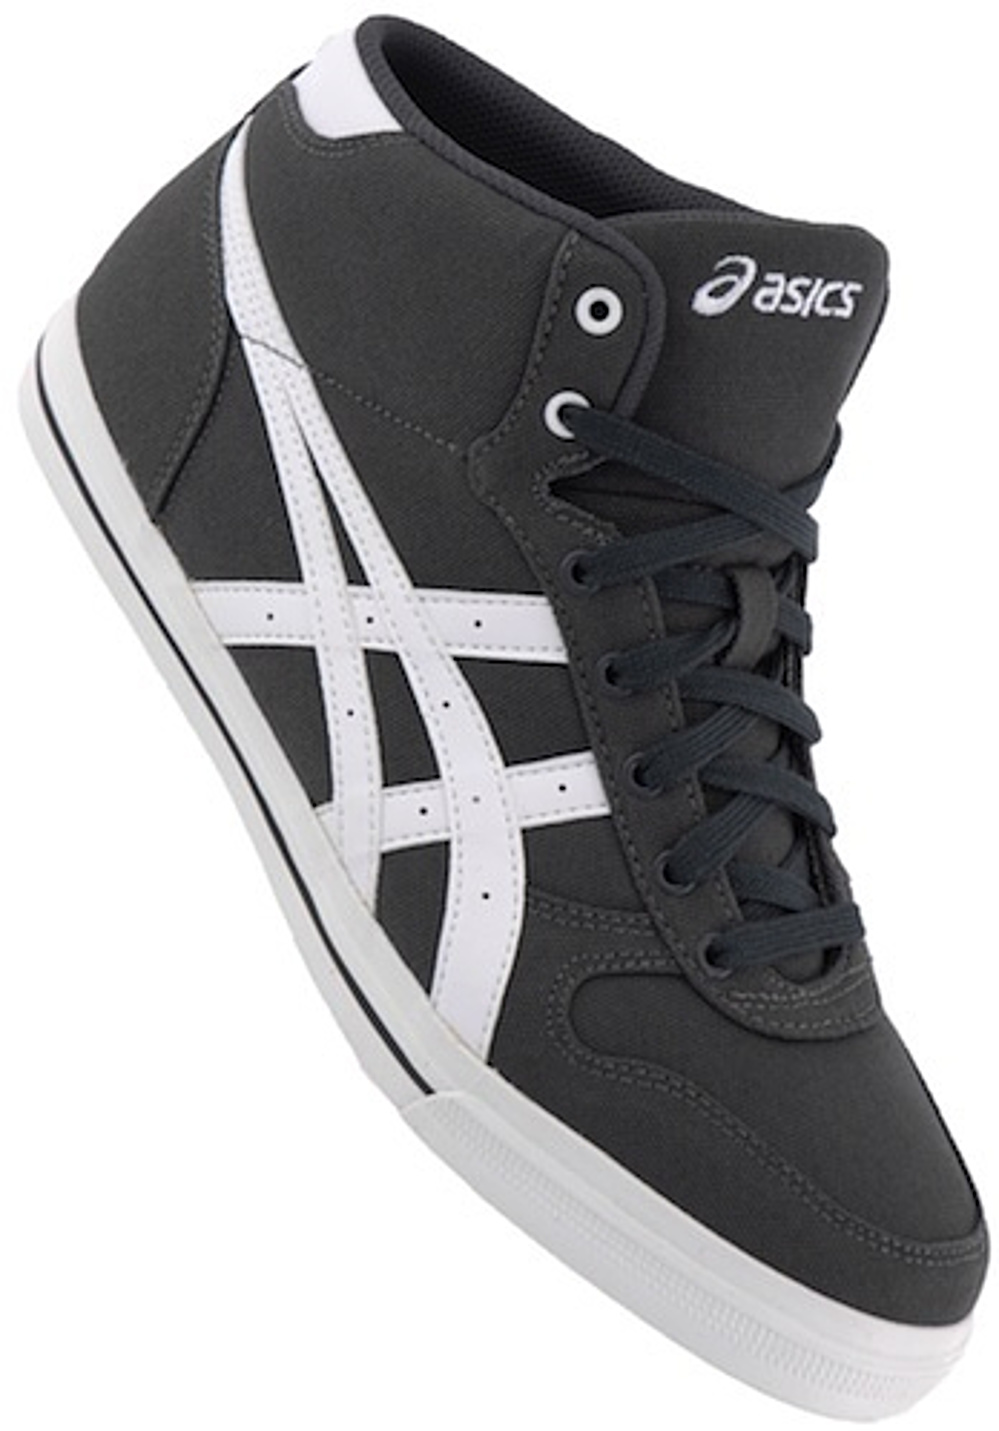 asics aaron mt sneakers with heels